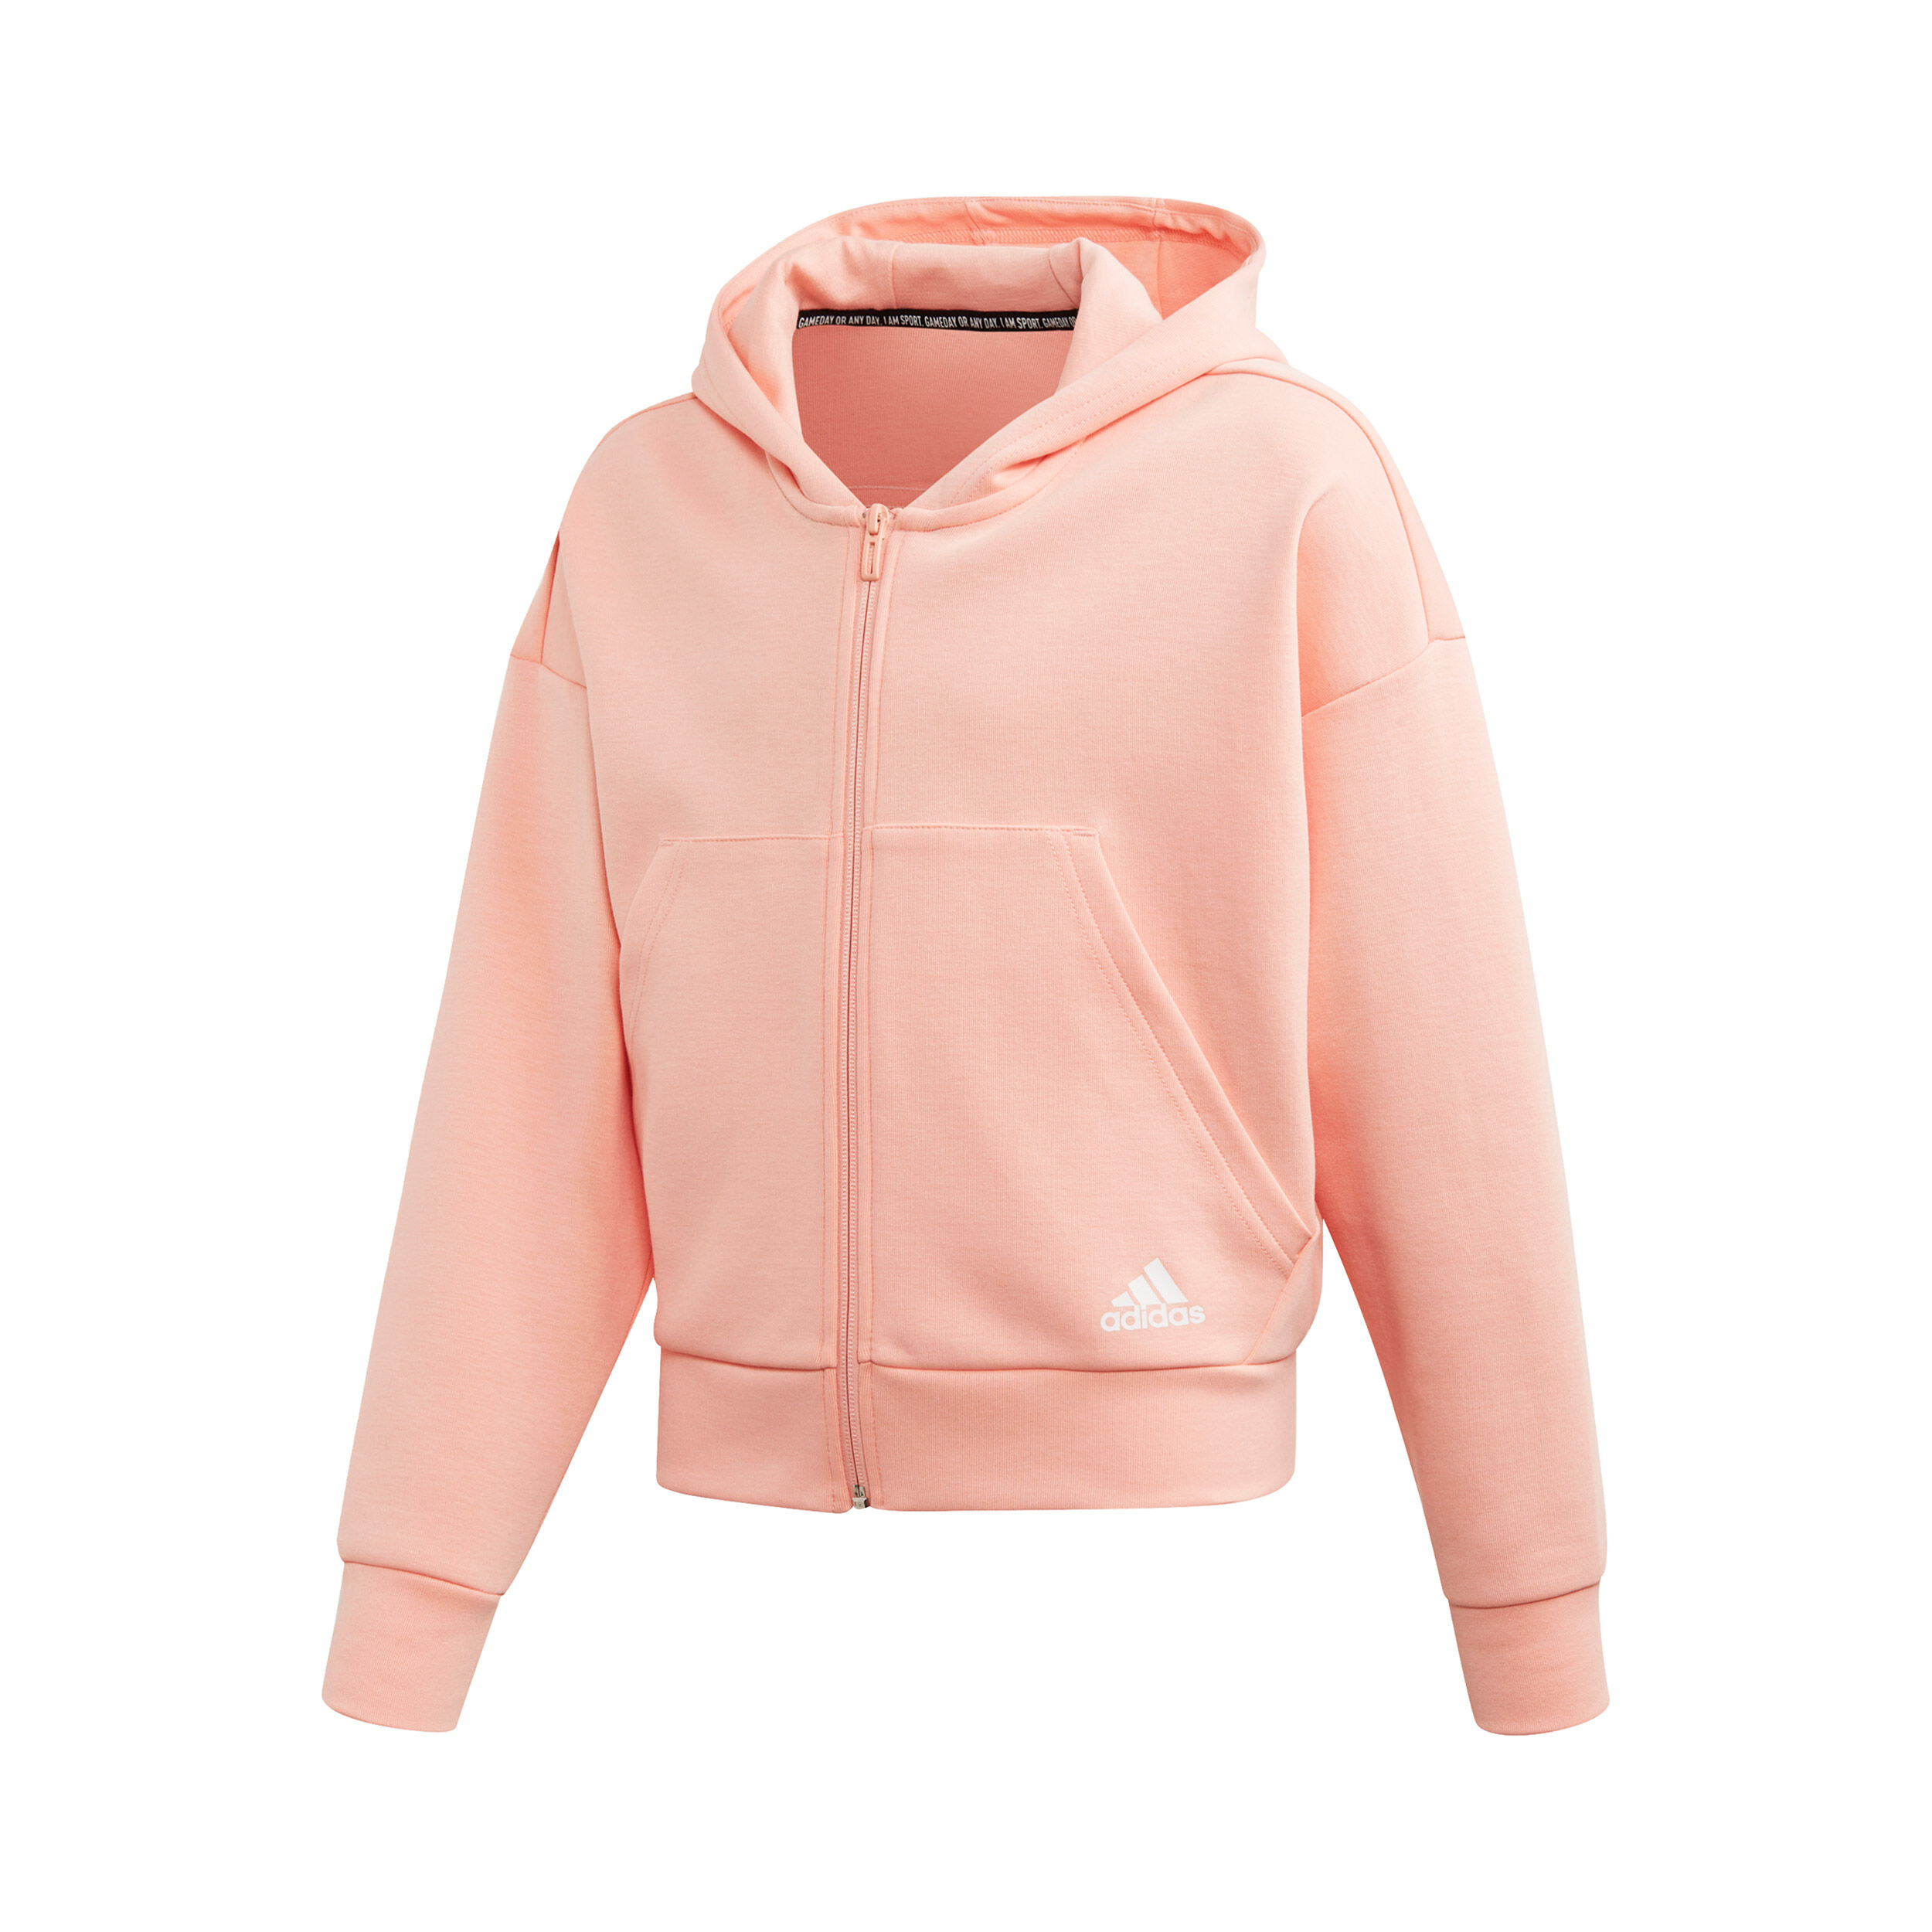 Must Haves Doubleknit 3 Stripes Full Zip Sweatjacke Mädchen Apricot,